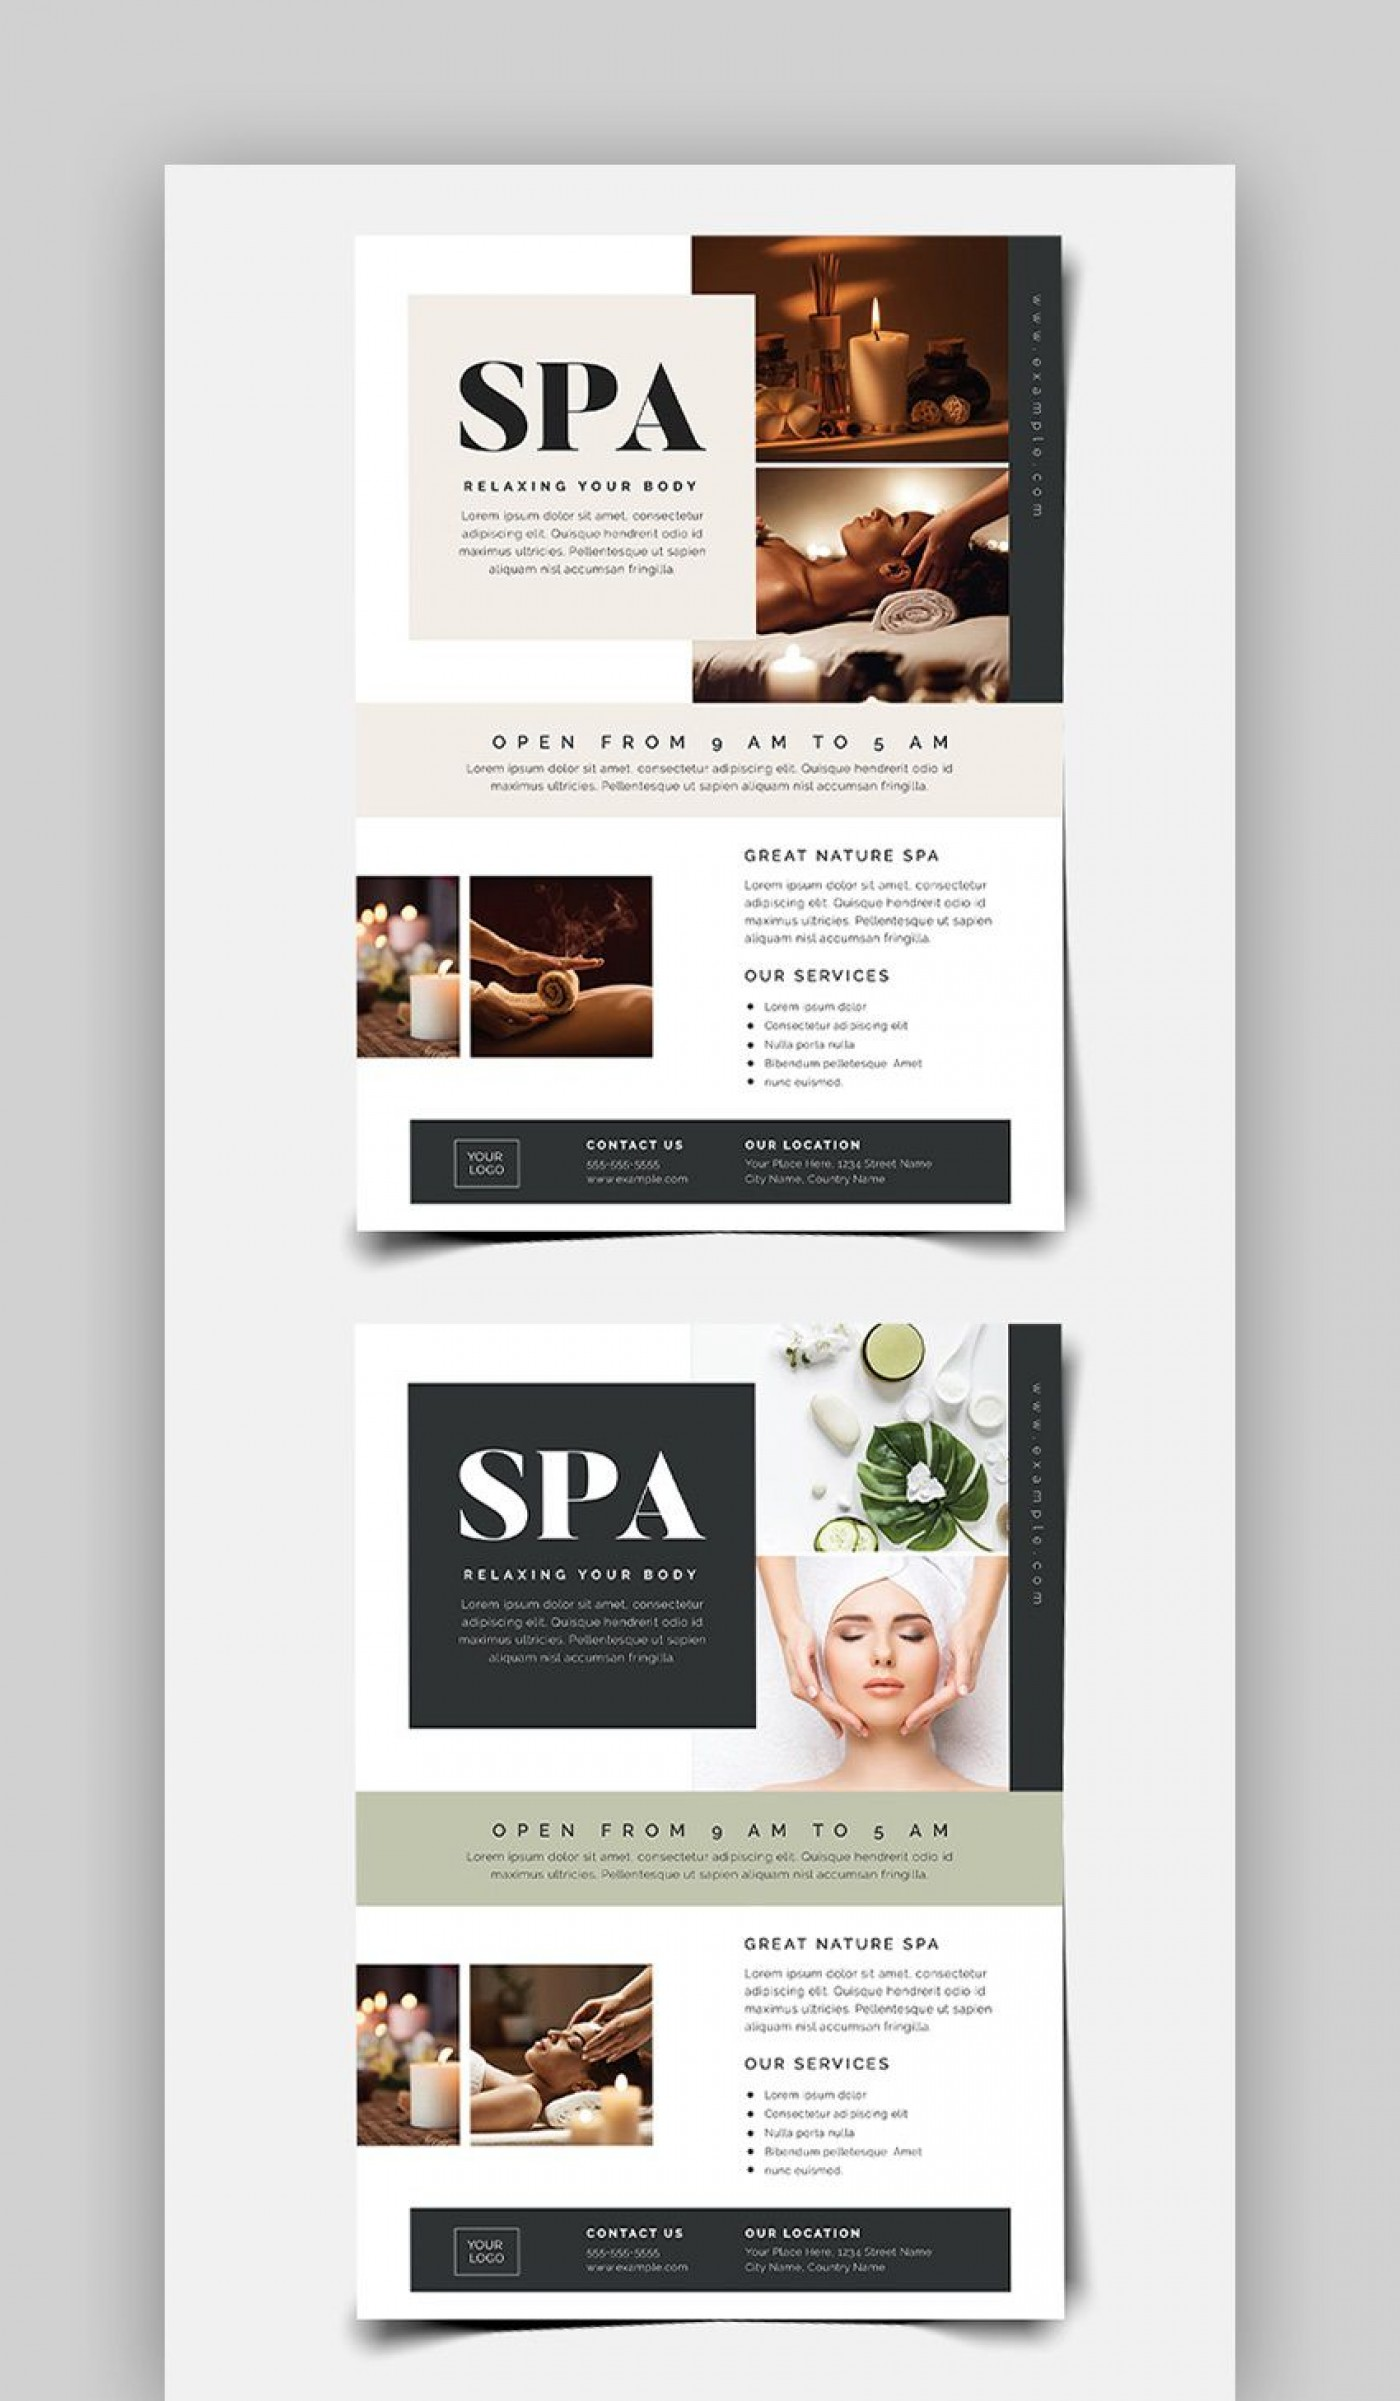 008 Surprising Photoshop Brochure Template Psd Free Download High Def 1400